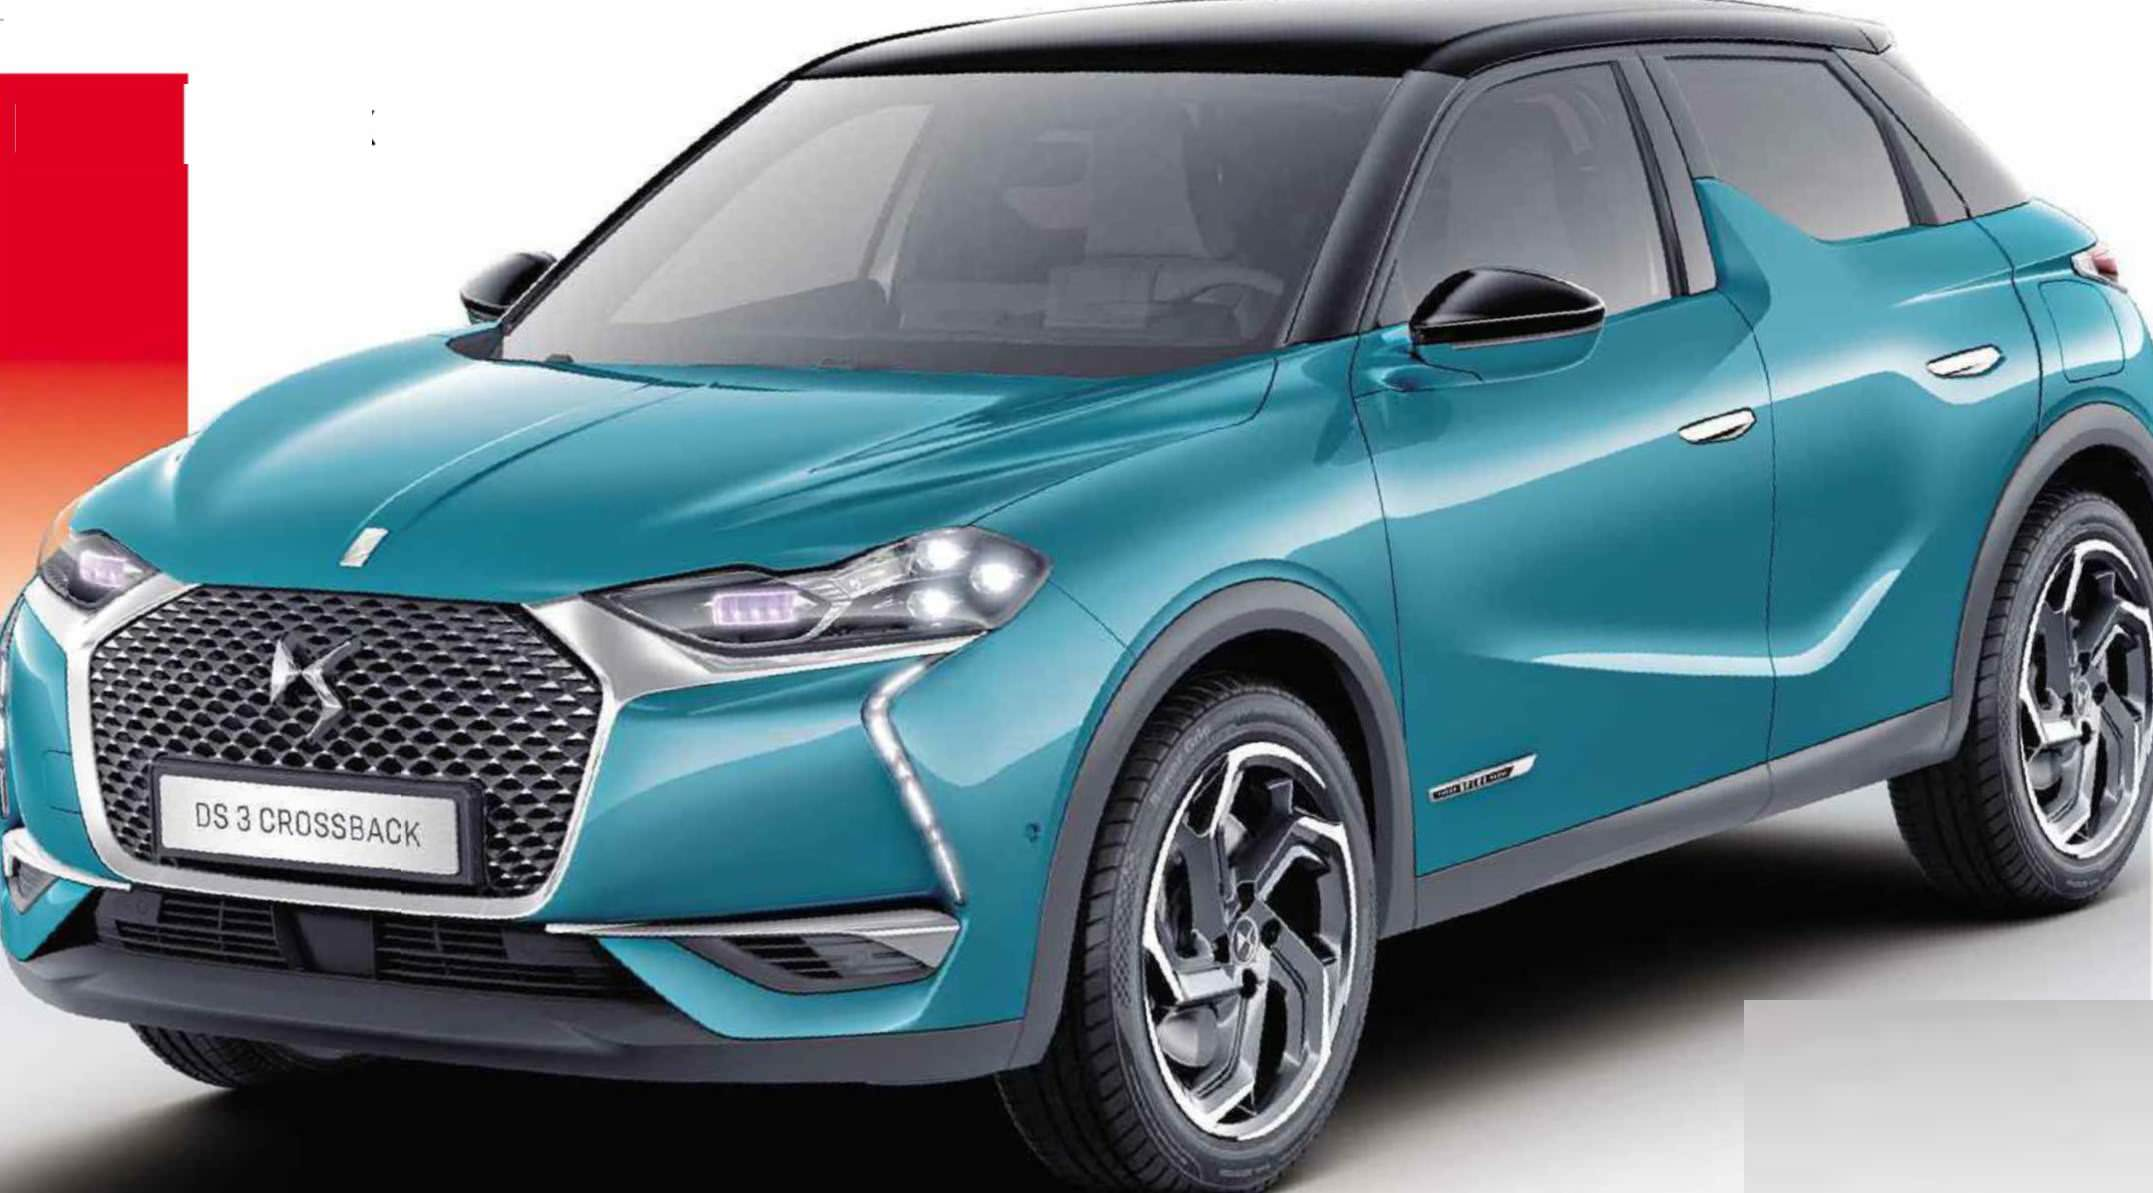 Crossback Takes DS 3 From Supermini To SUV